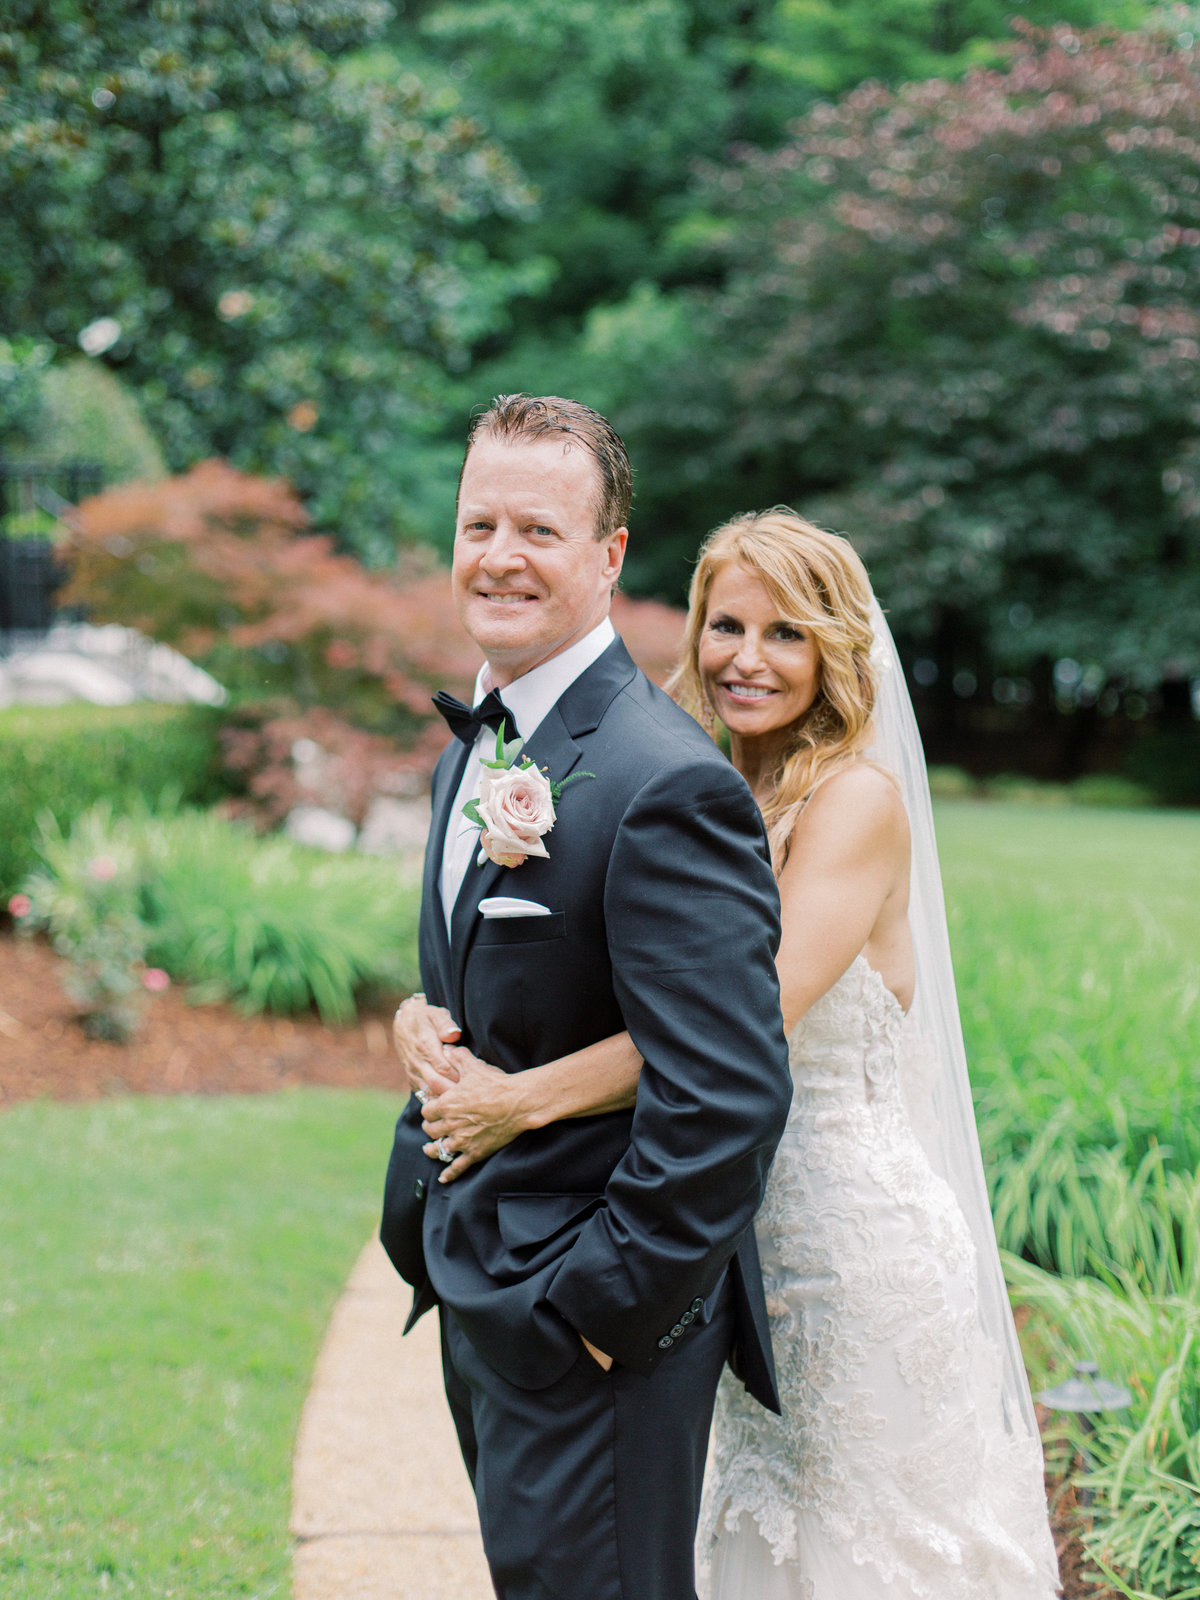 2019-06-08Carrie&MikeWedding-292